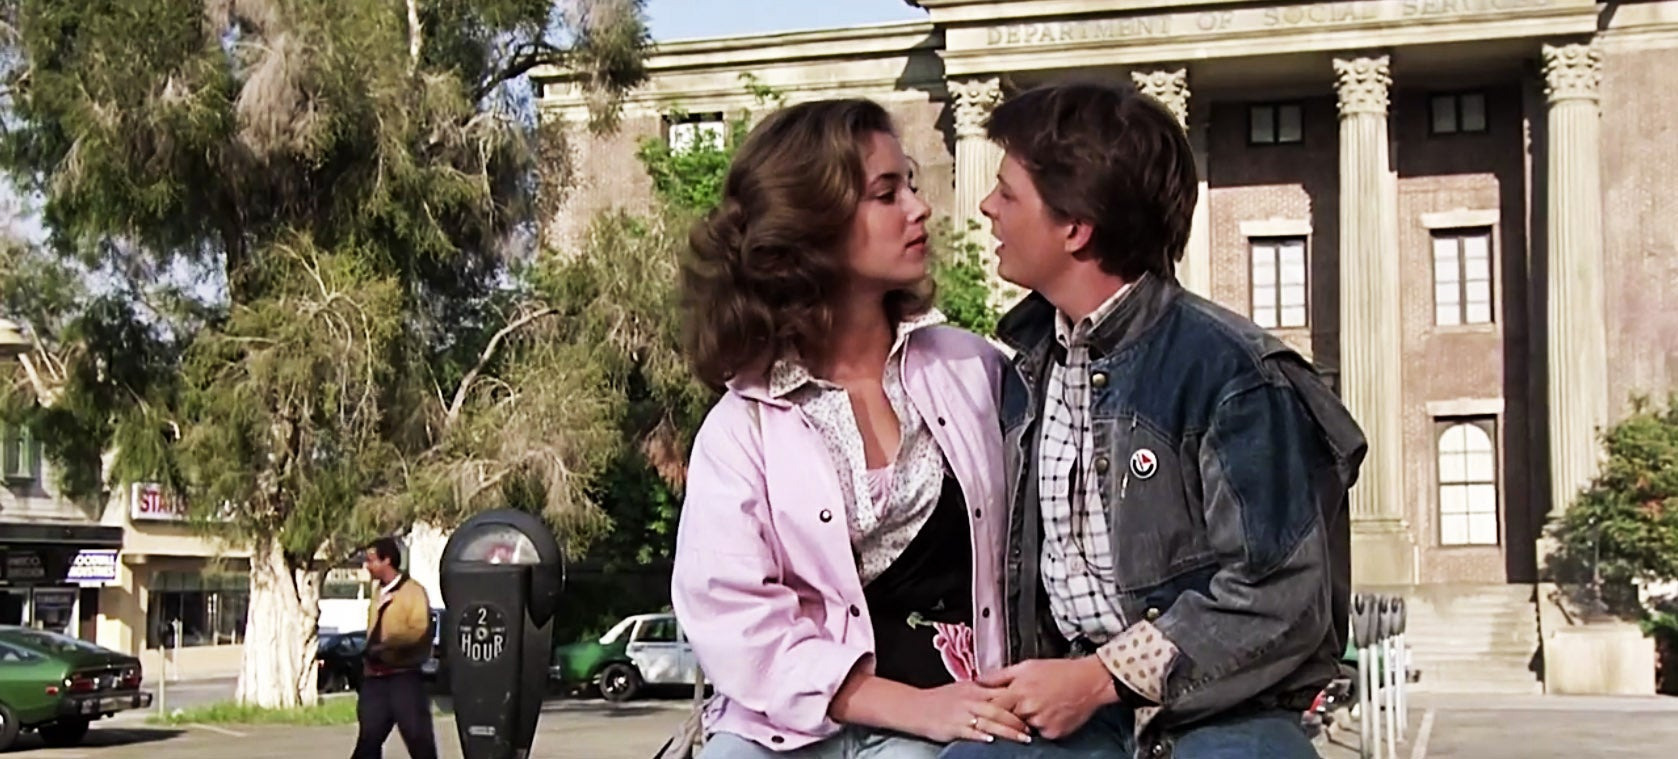 Back to the Future dialog remixed into a love song